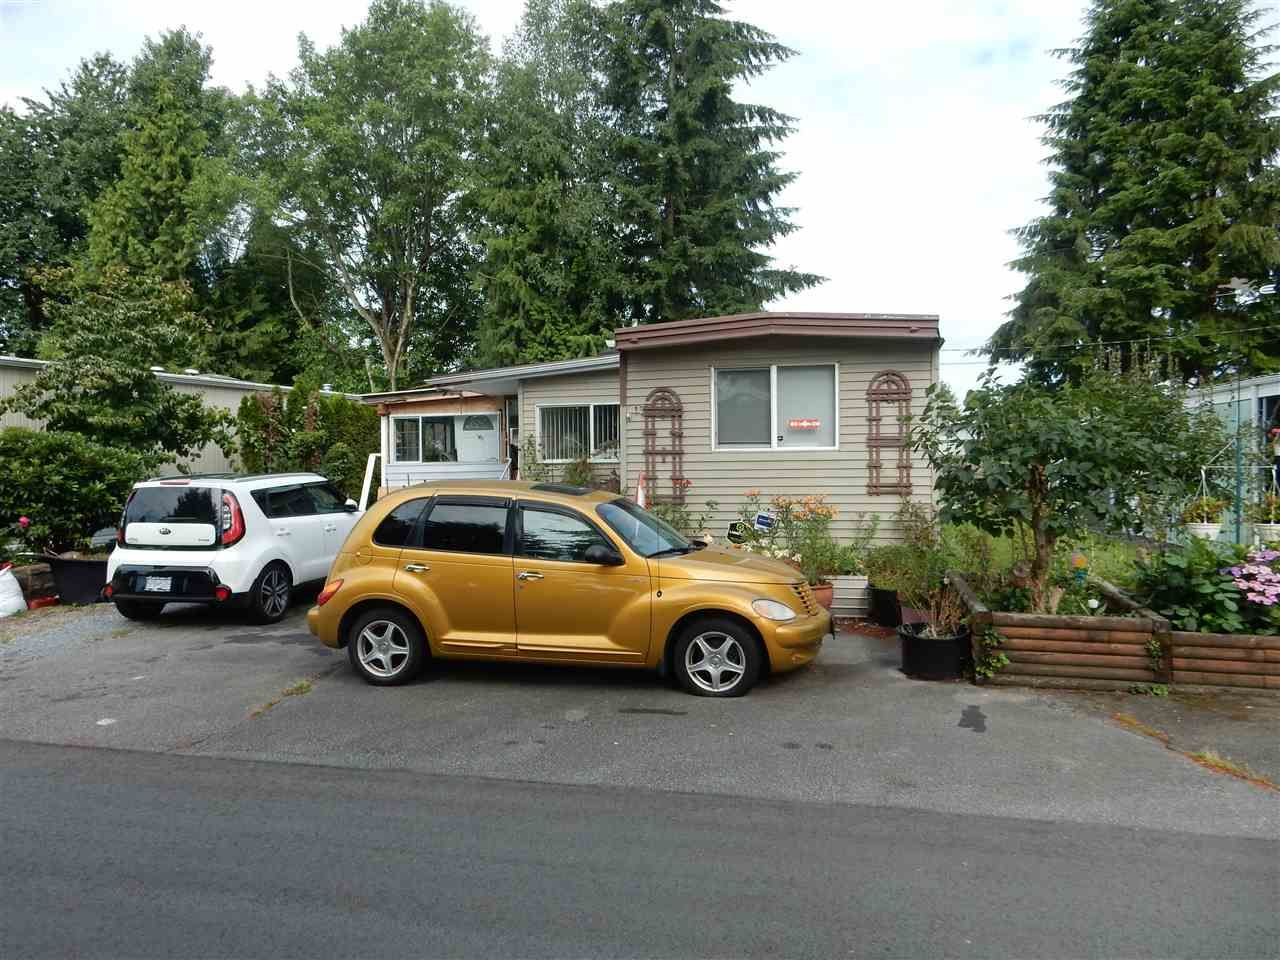 """Main Photo: 15 15820 FRASER Highway in Surrey: Fleetwood Tynehead Manufactured Home for sale in """"Greentree Estates"""" : MLS®# R2088242"""